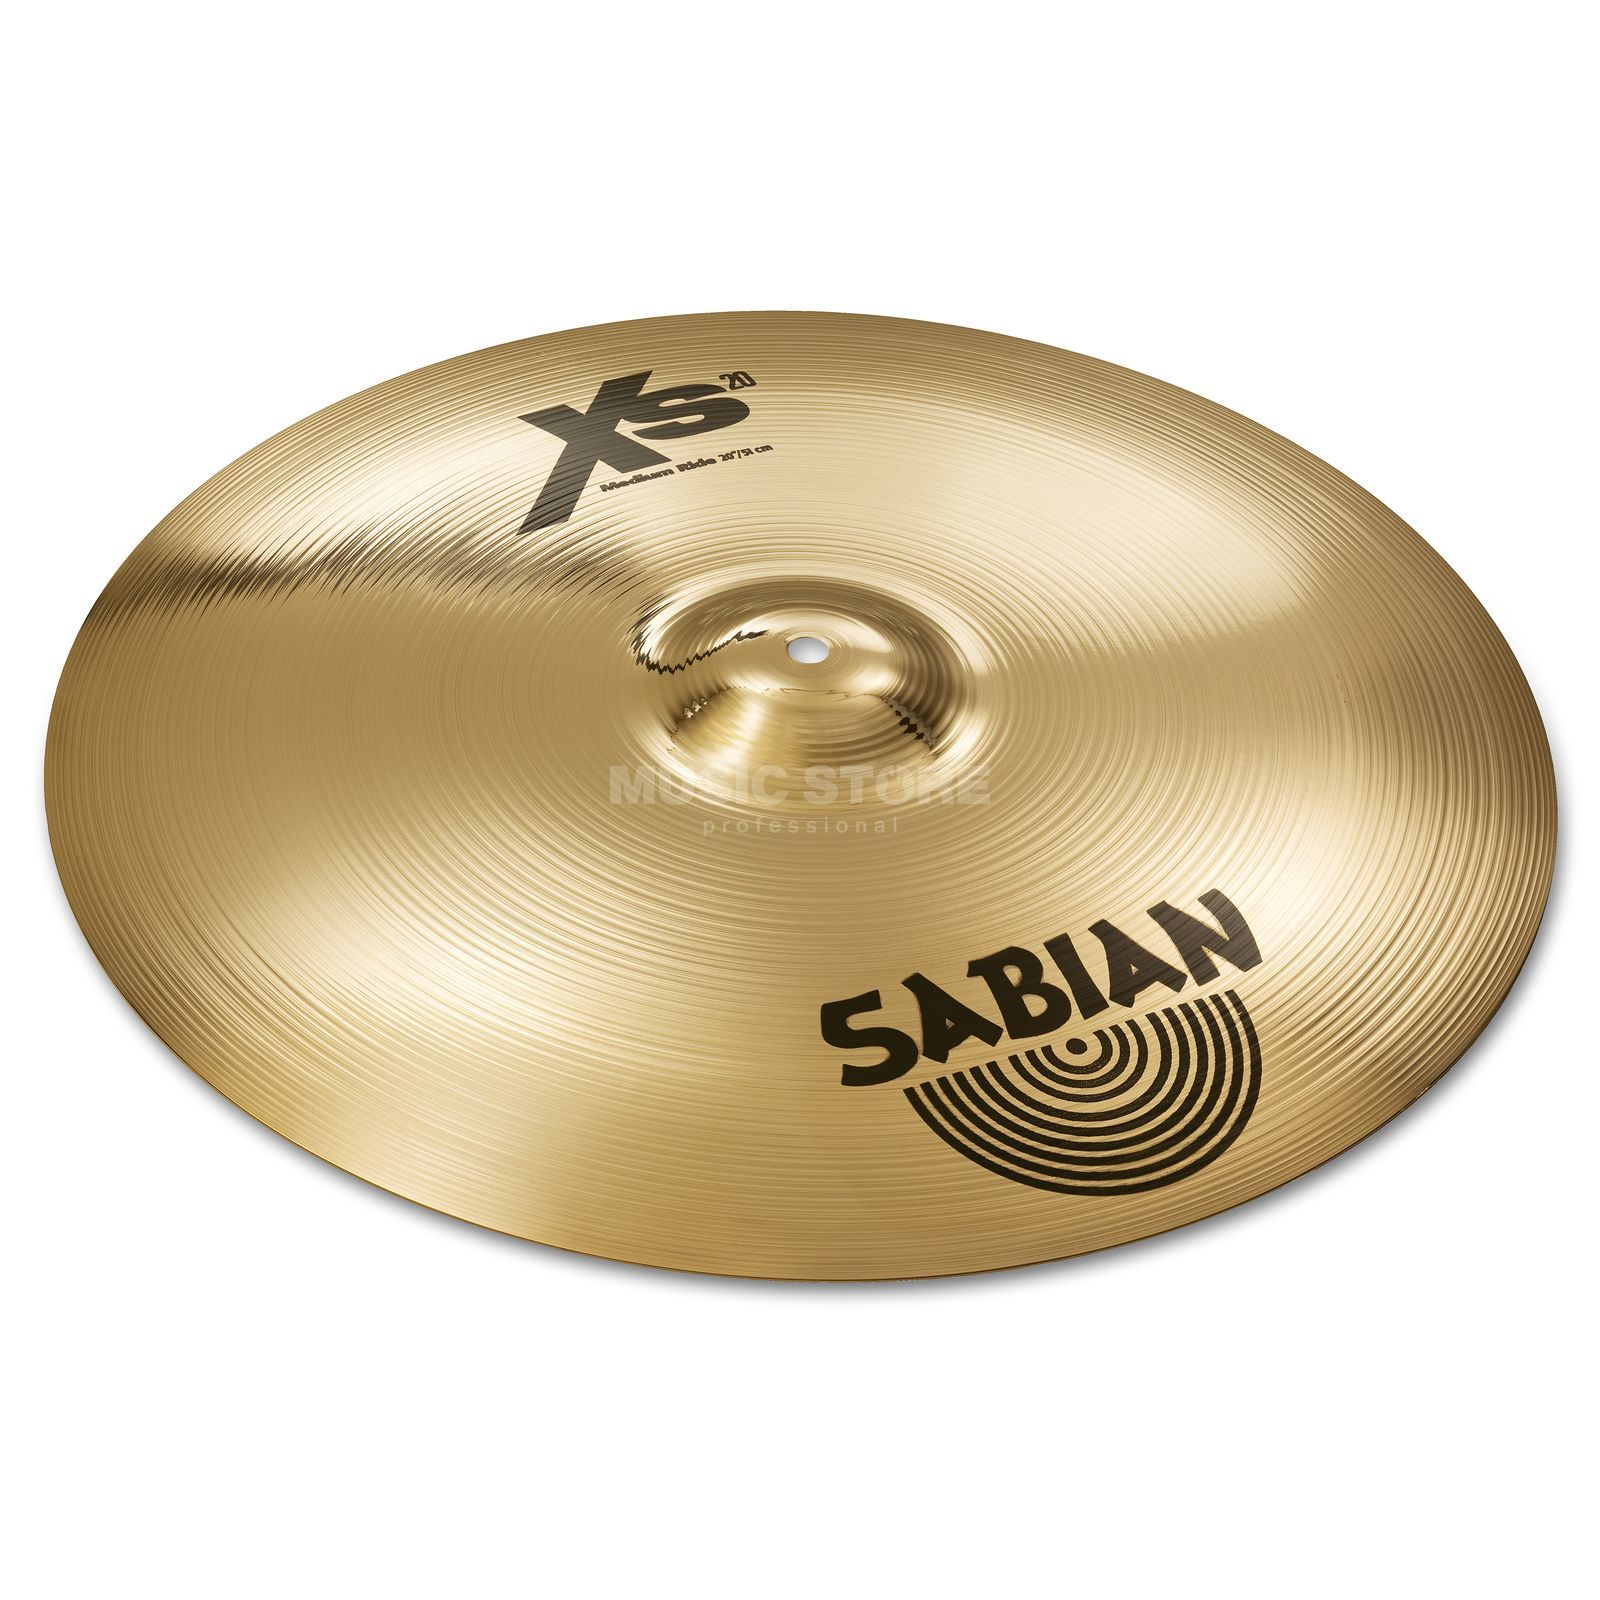 "Sabian XS20 Medium Ride 20"", Brilliant Finish Product Image"